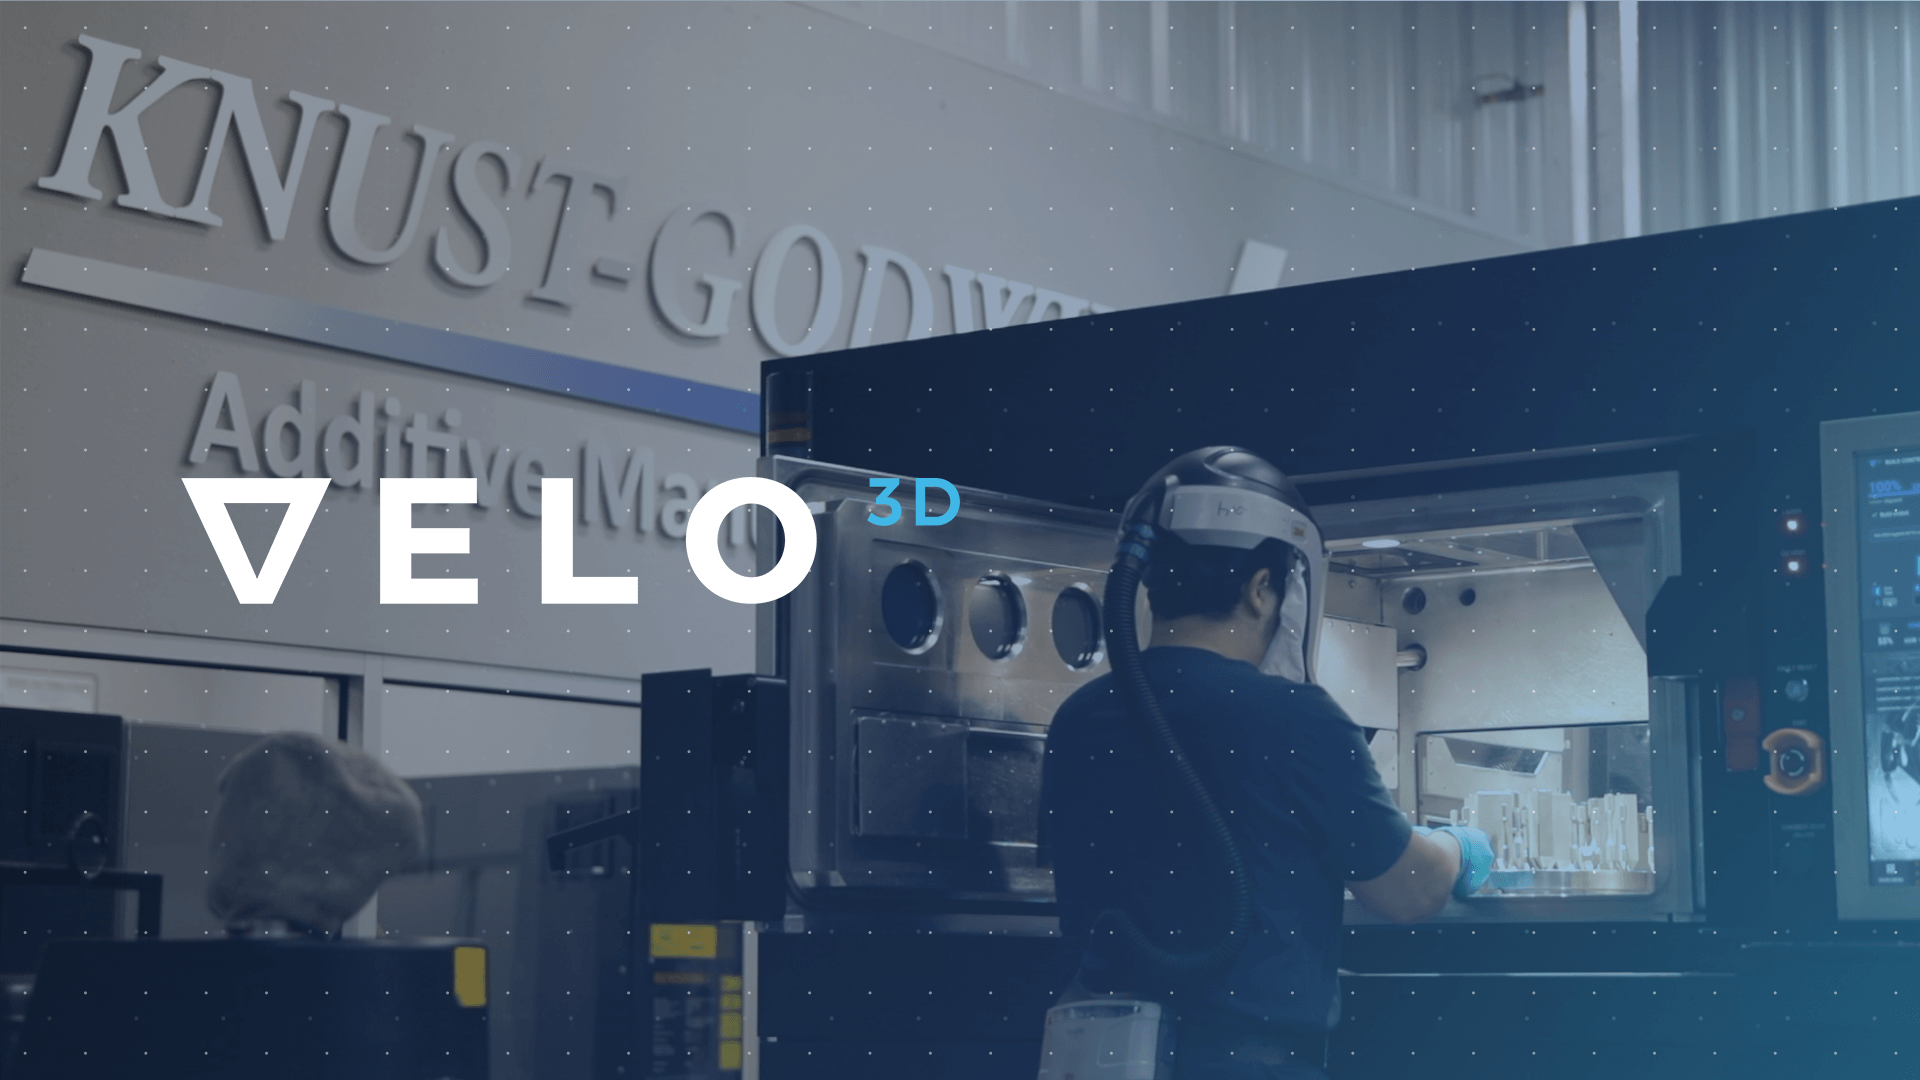 Going Beyond Limitations with Velo3D (Video)